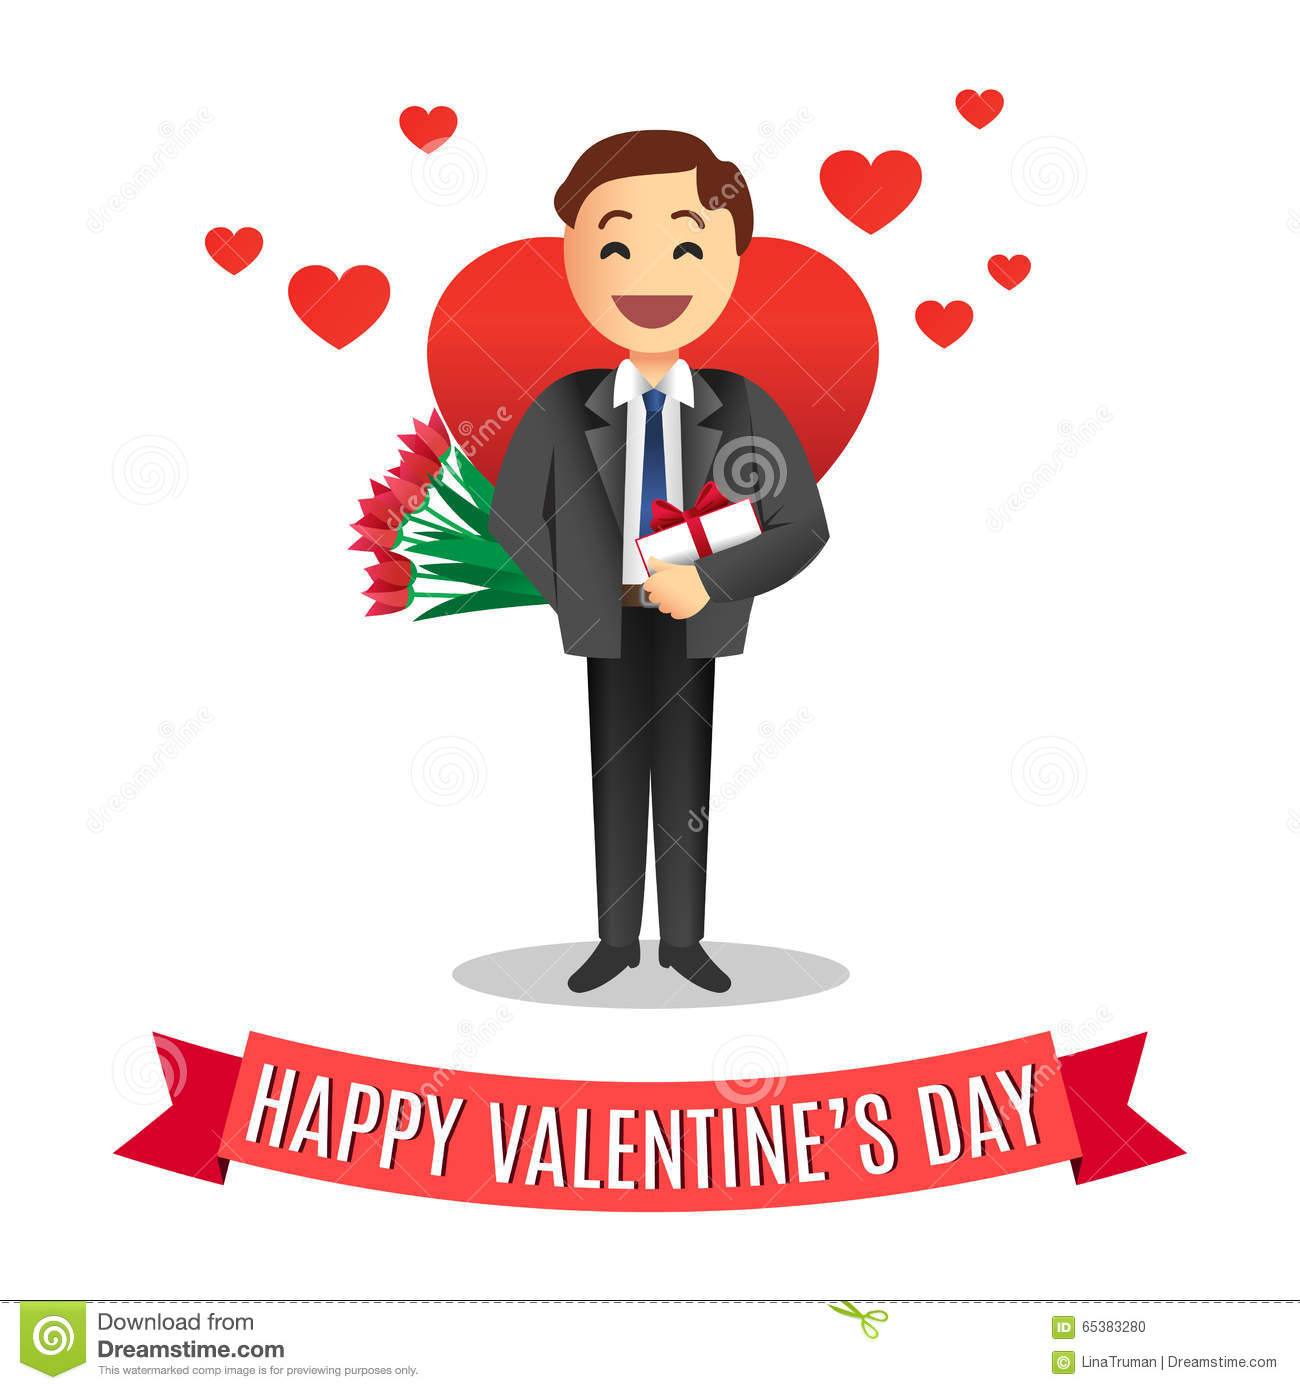 Romantic Cartoon Man With Flowers For Valentines Day Stock Vector